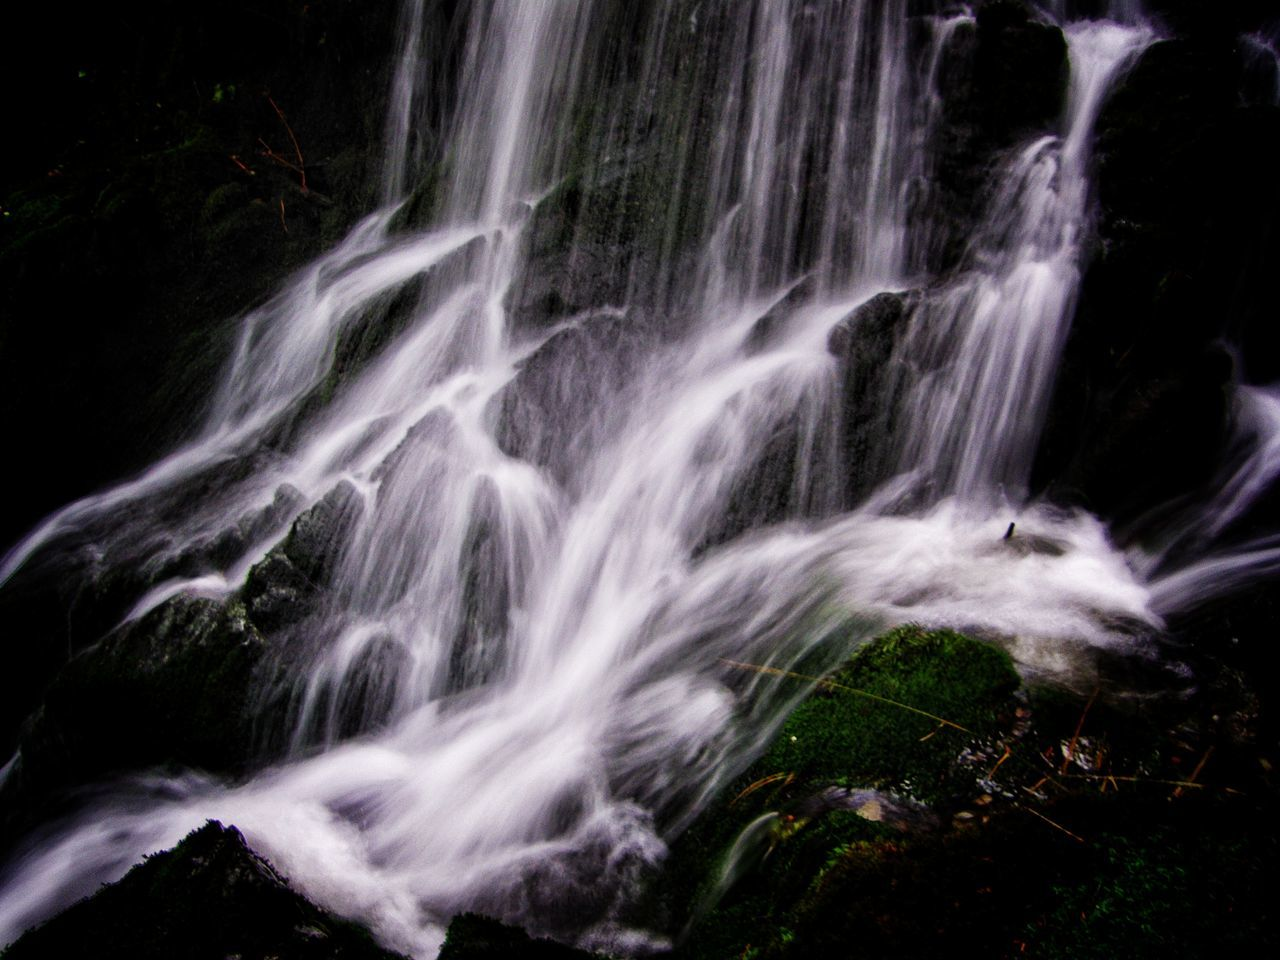 scenics, no people, nature, waterfall, motion, long exposure, beauty in nature, water, outdoors, travel destinations, day, sky